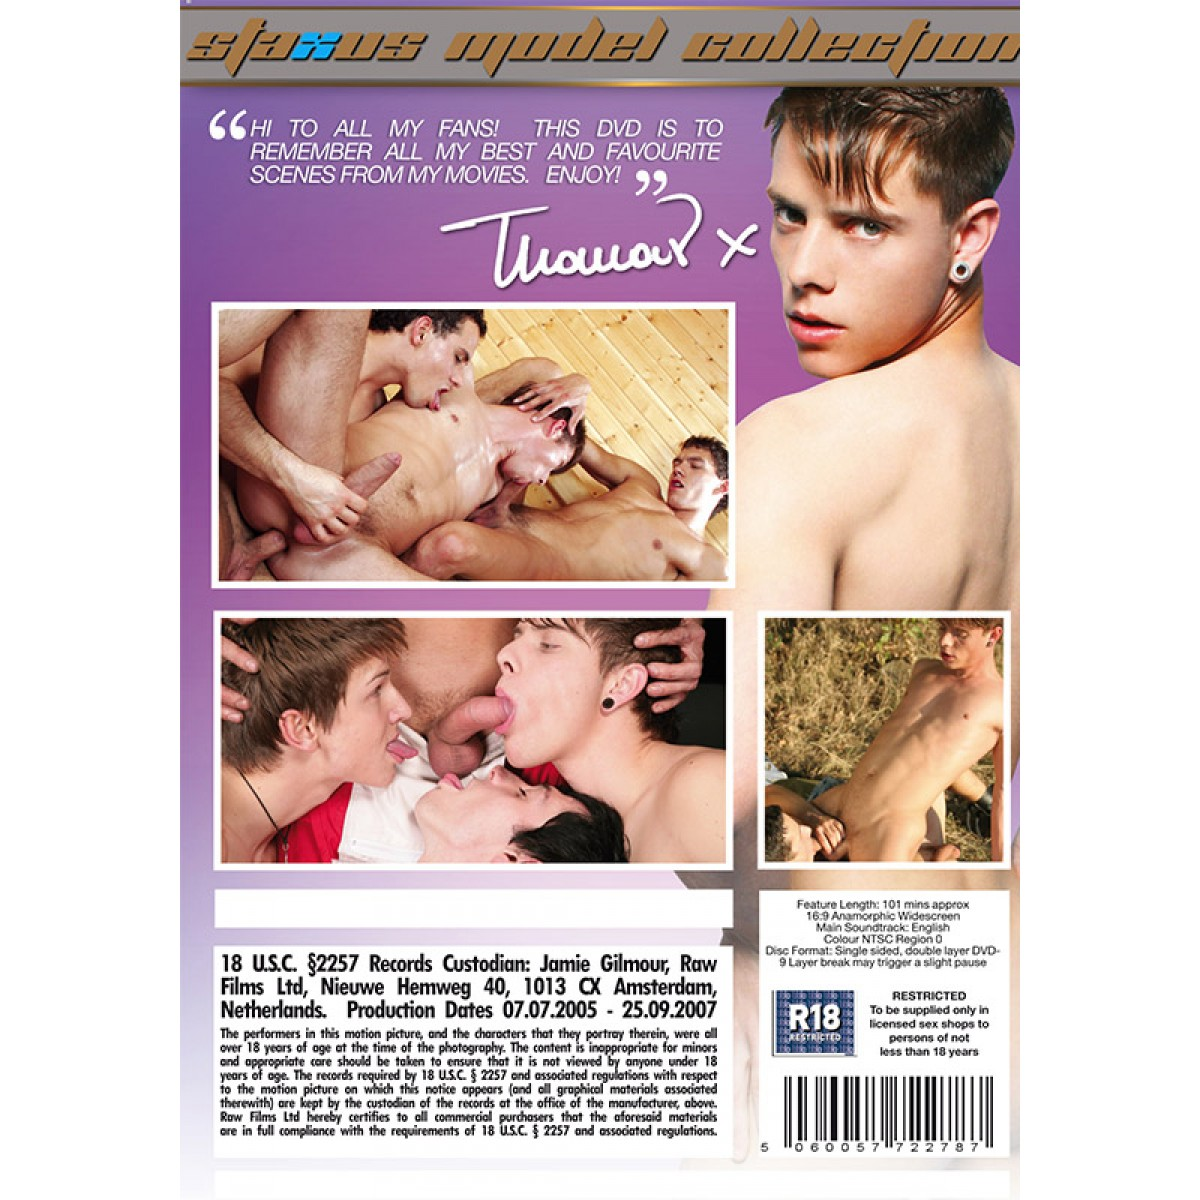 Carey Lexes Porn Filmography staxus model collection 06: thomas dyk dvd - no cover art available